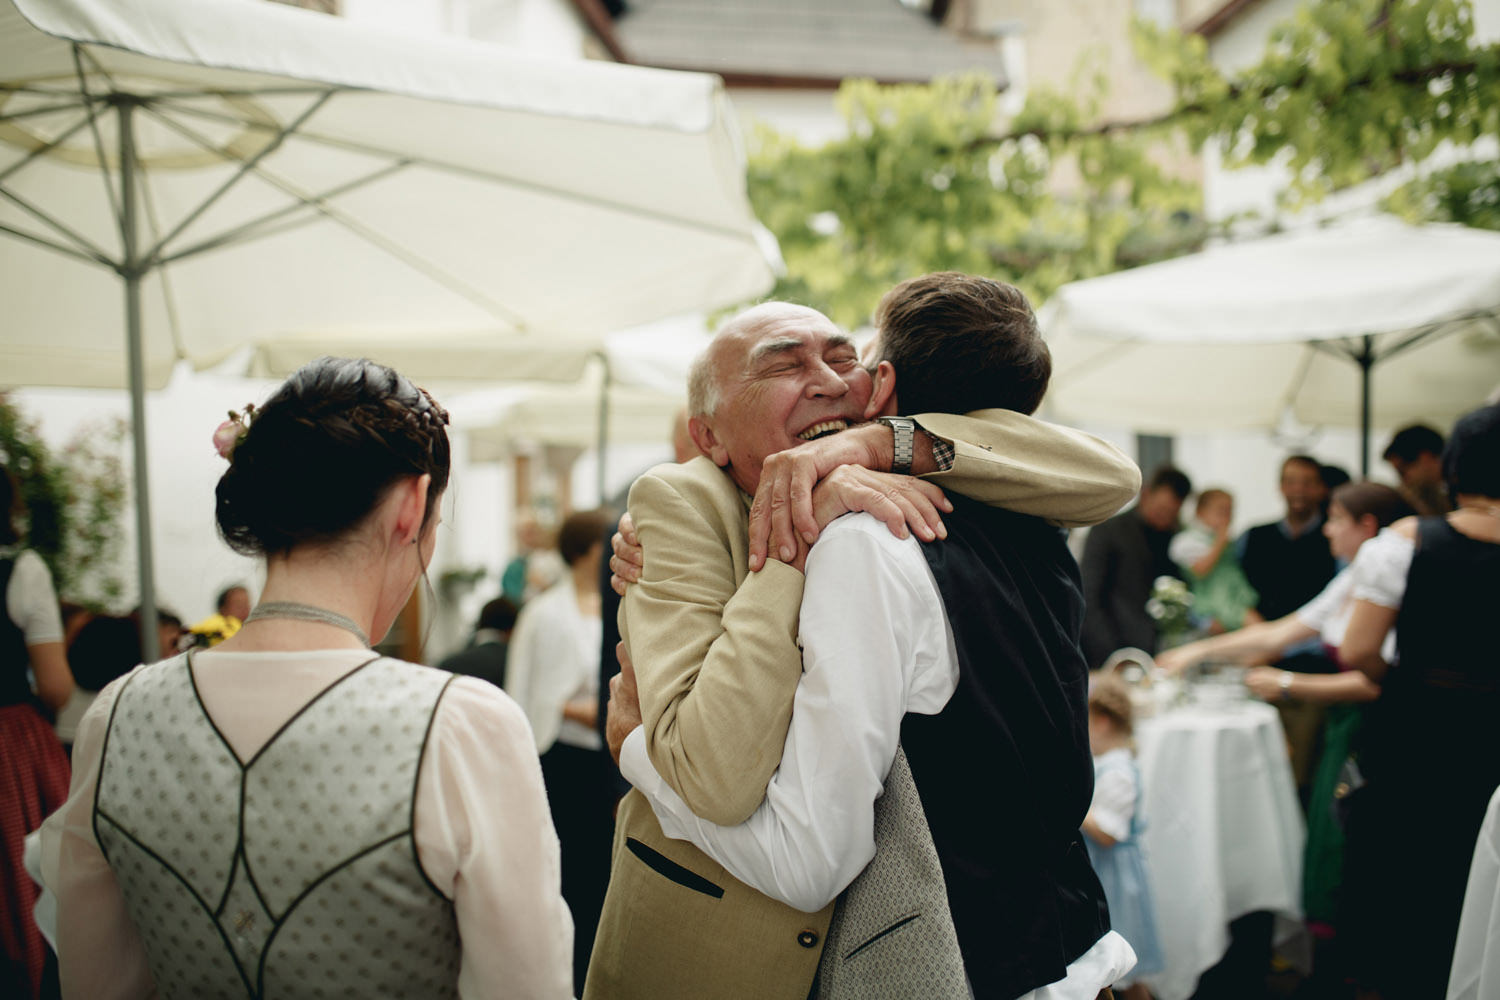 greeting the groom after perchtoldsdorf wedding